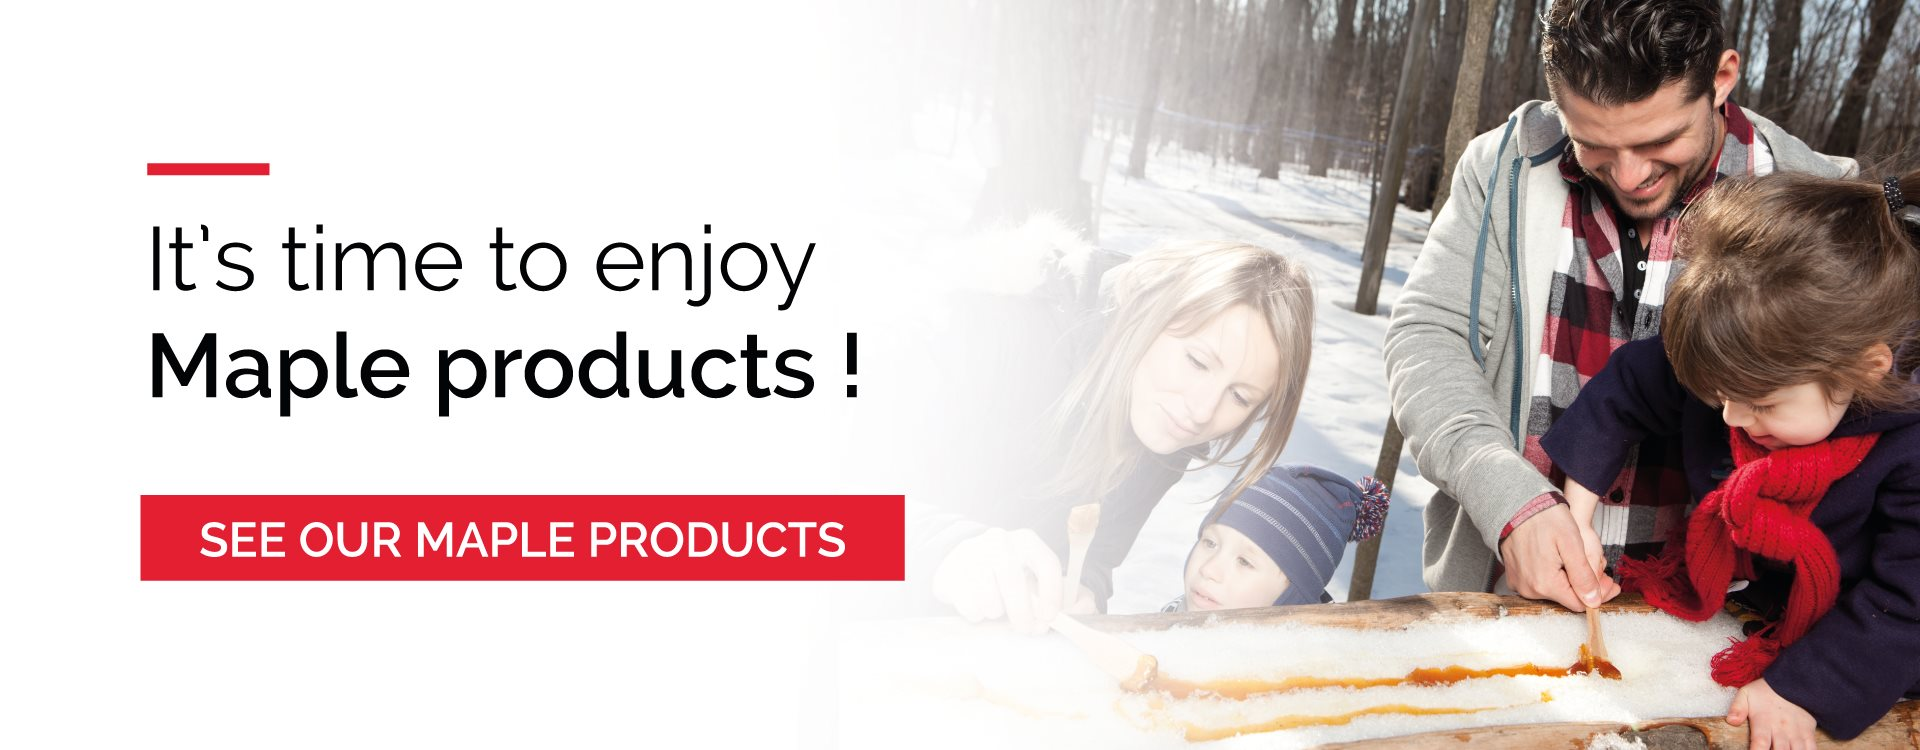 See our maple products